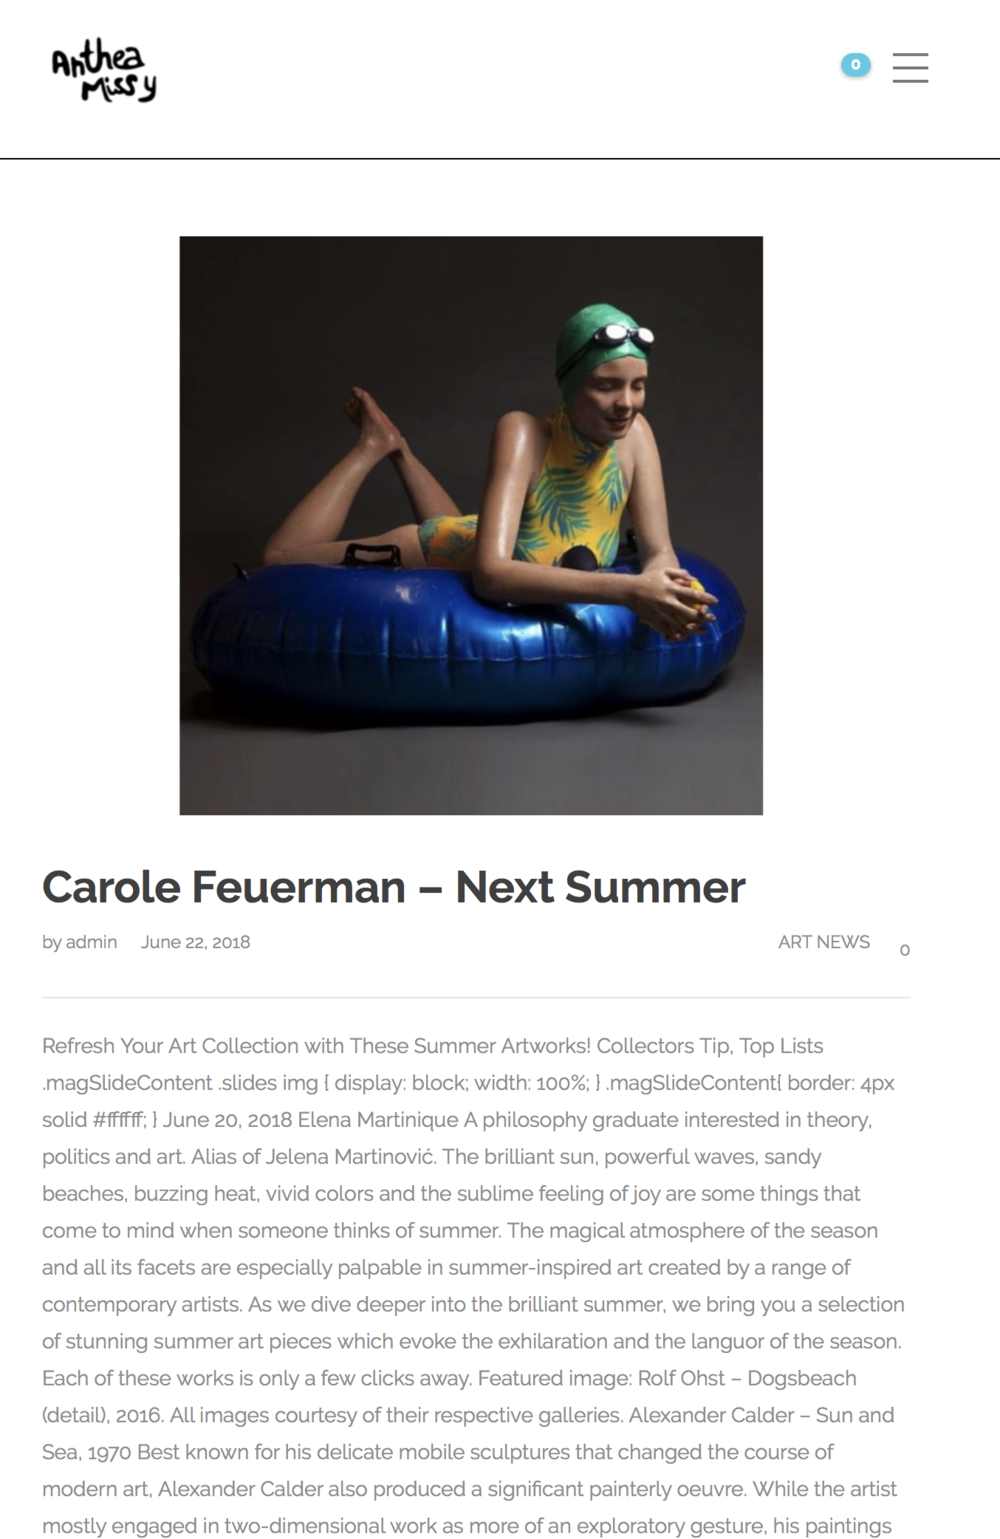 Carole Feuerman - Next Summer